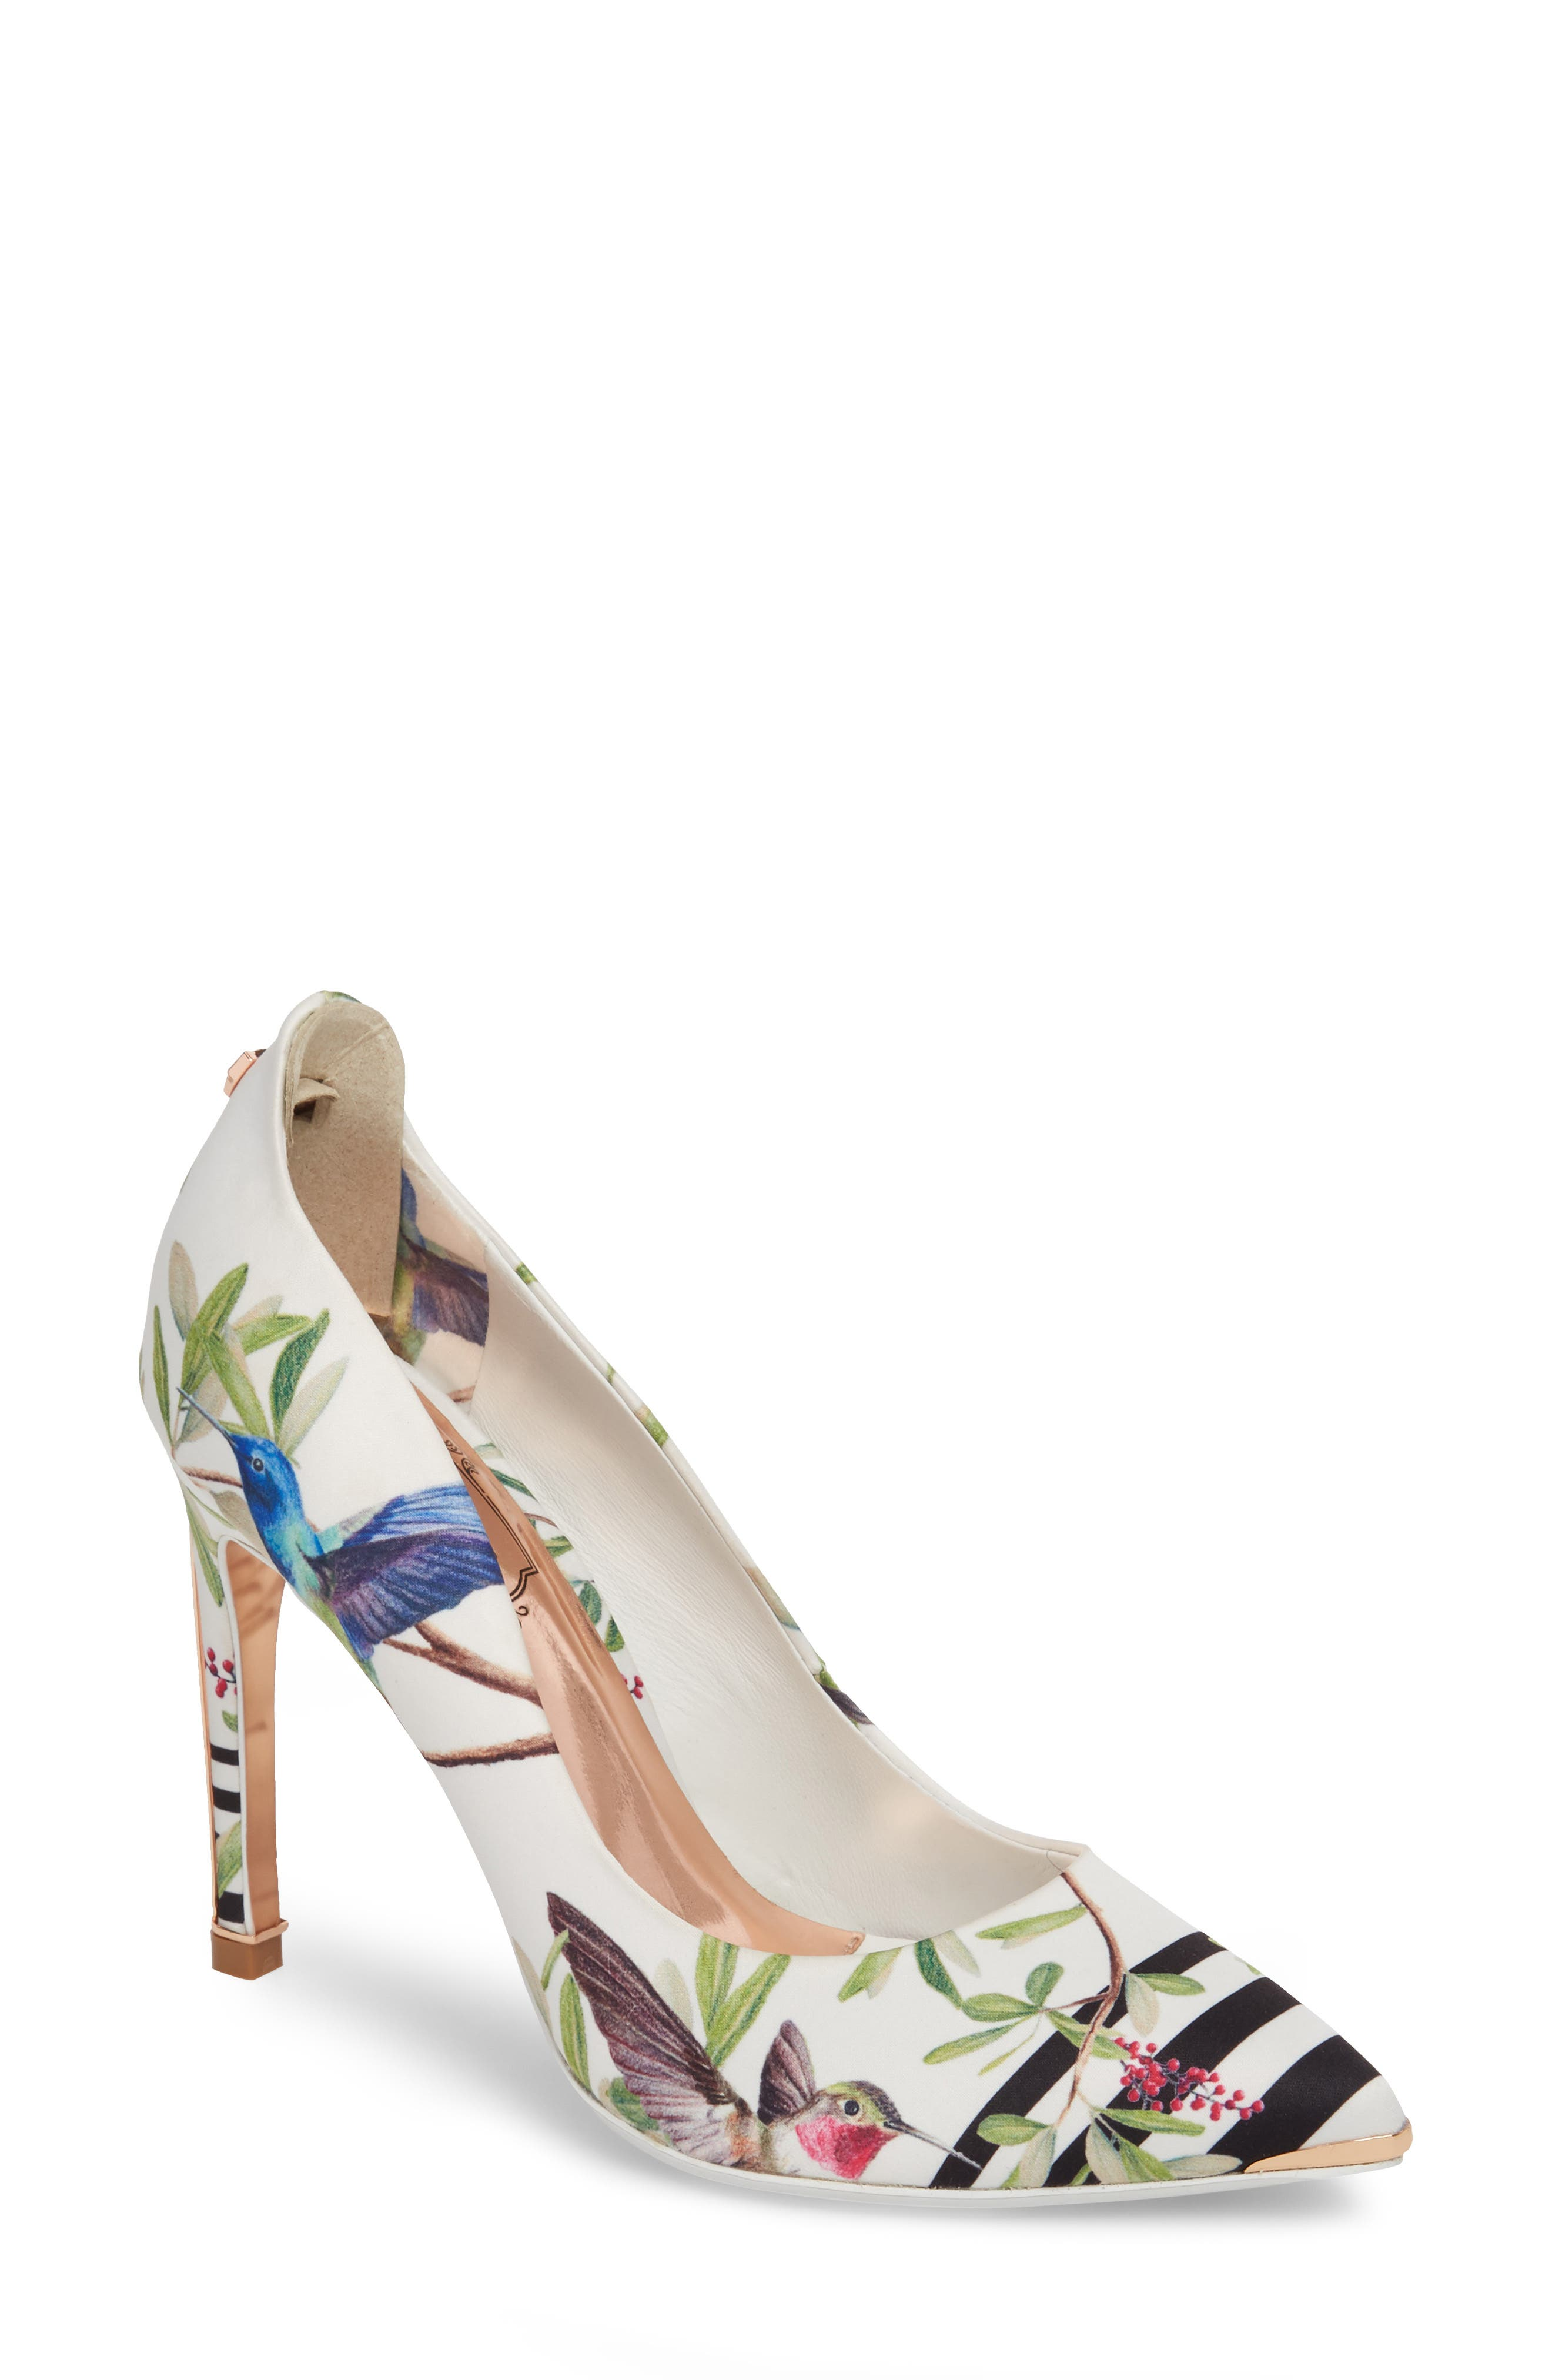 Hallden Pump,                         Main,                         color, Highgrove Hummingbird Print